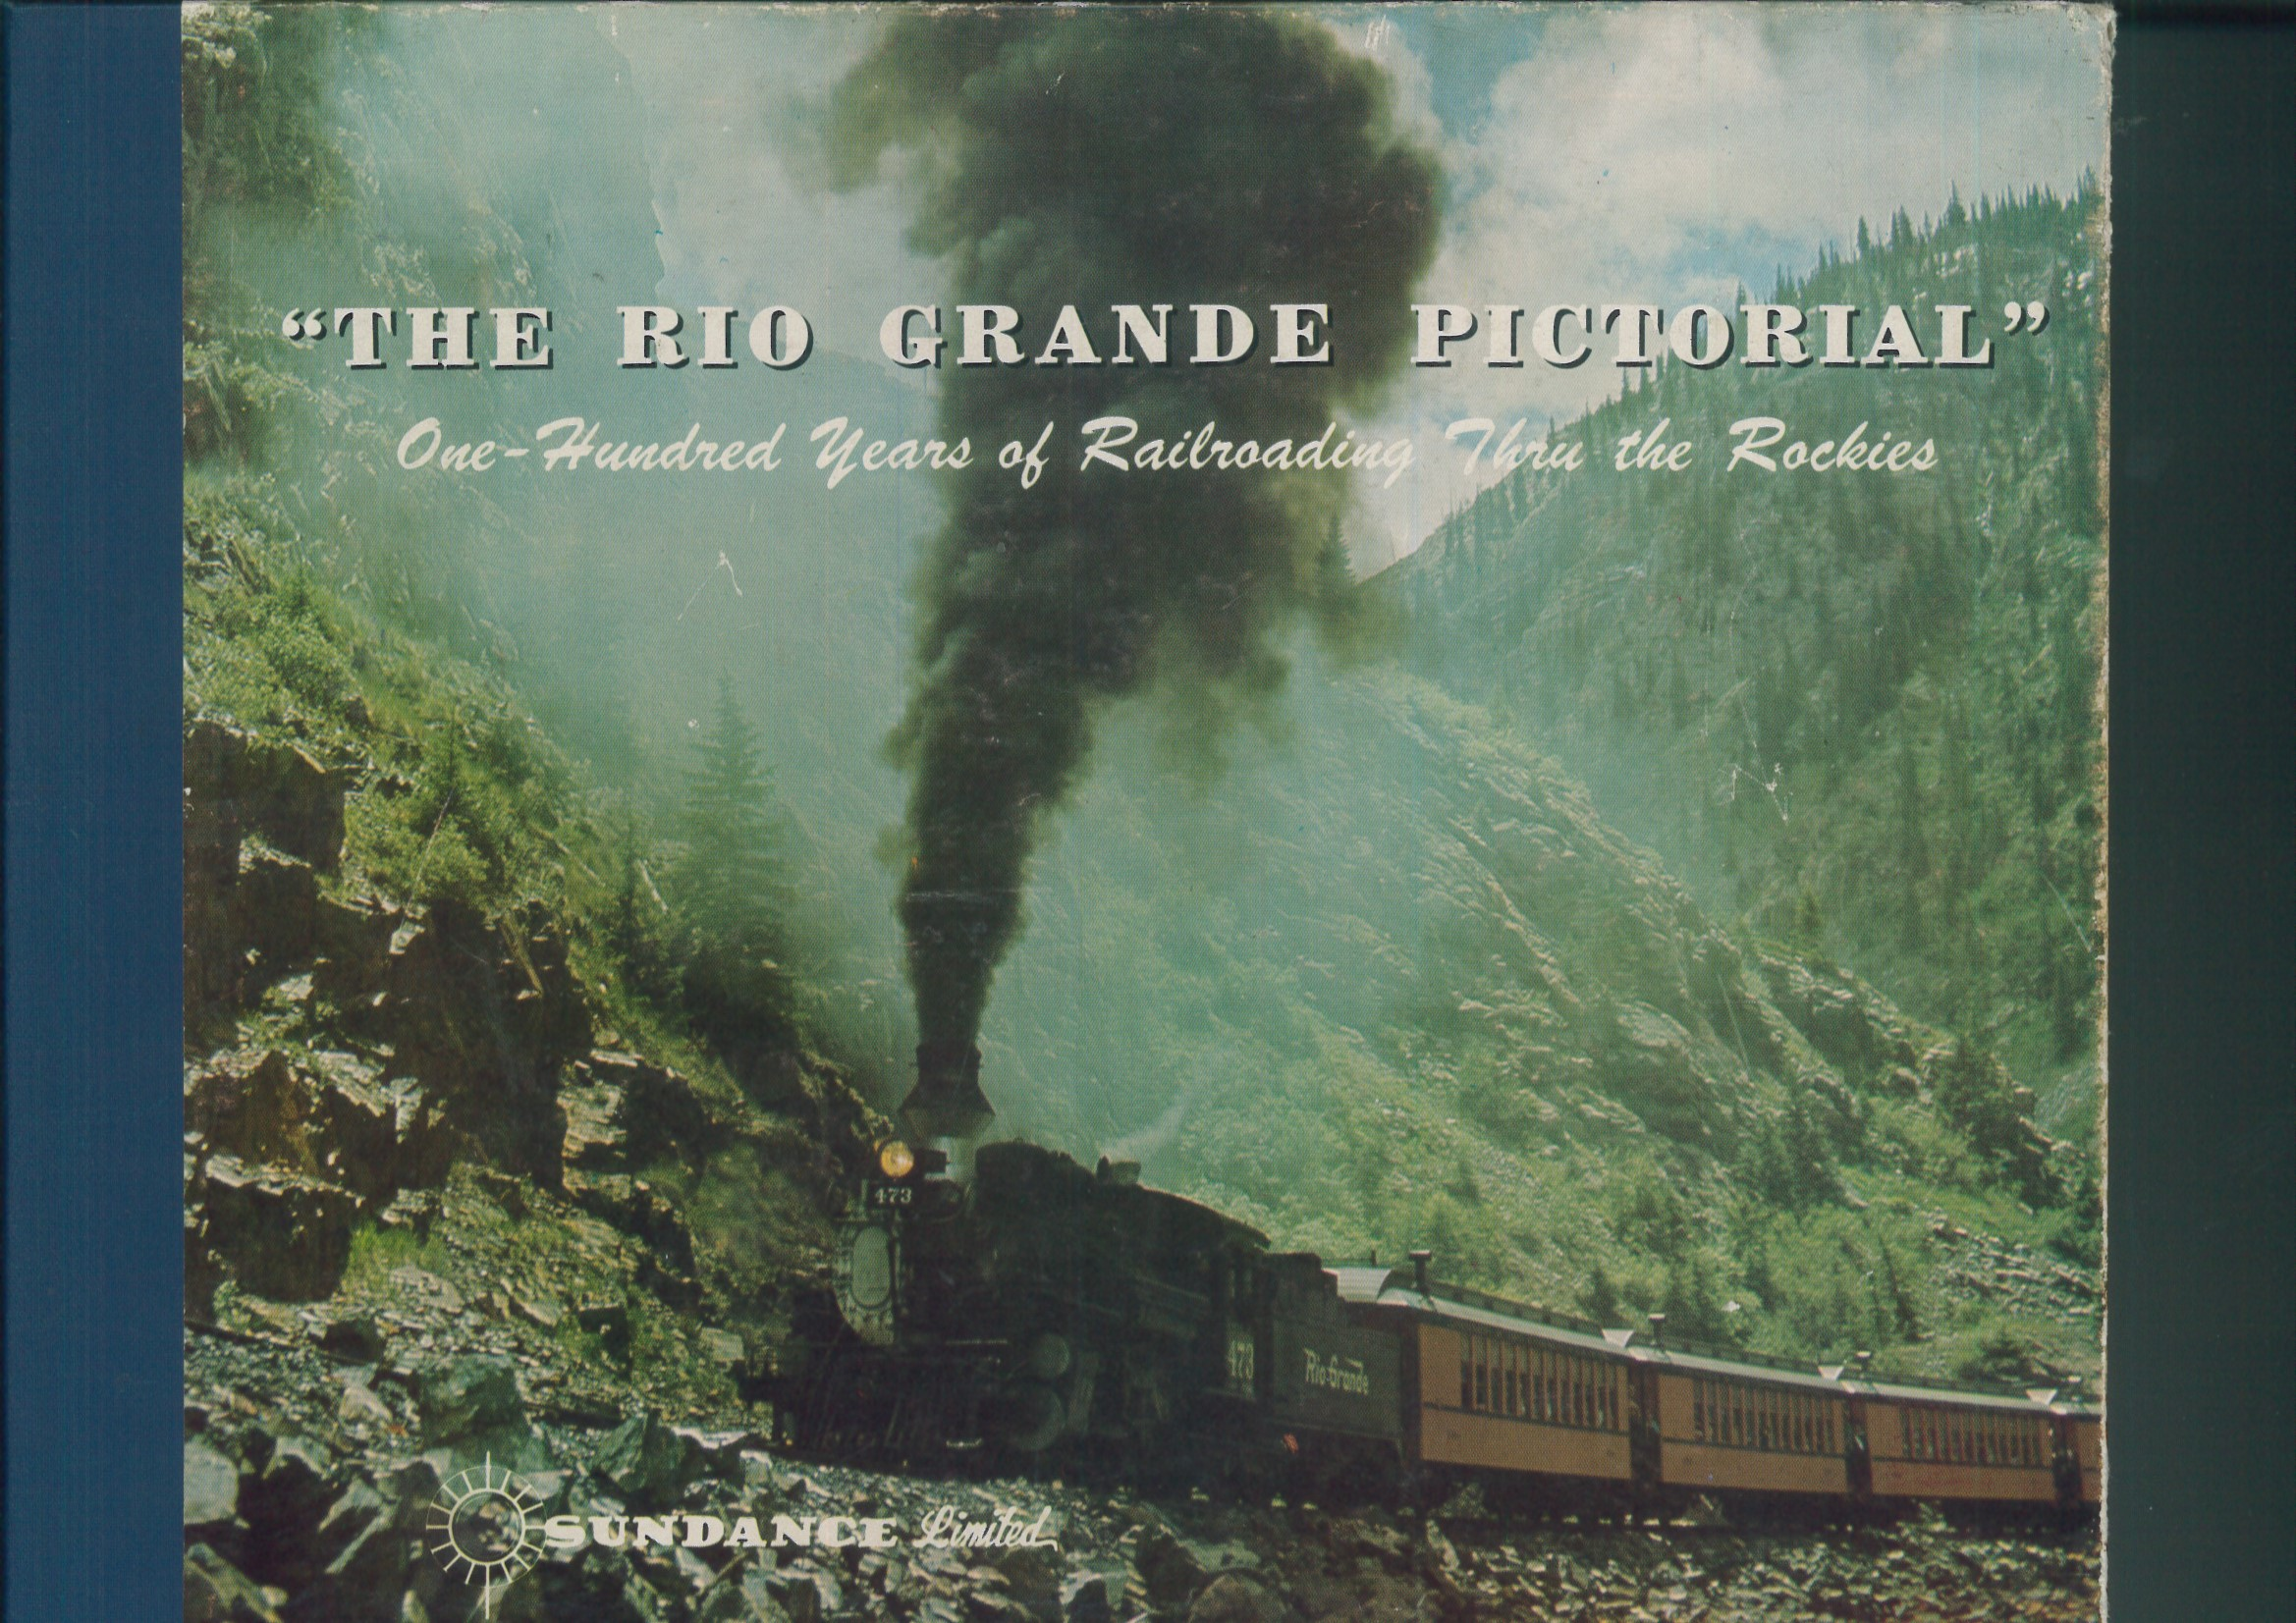 Rio Grande Pictorial - 100 Years of Railroading in the Rockies  | günstig bestellen bei Modelleisenbahn Center  MCS Vertriebs GmbH